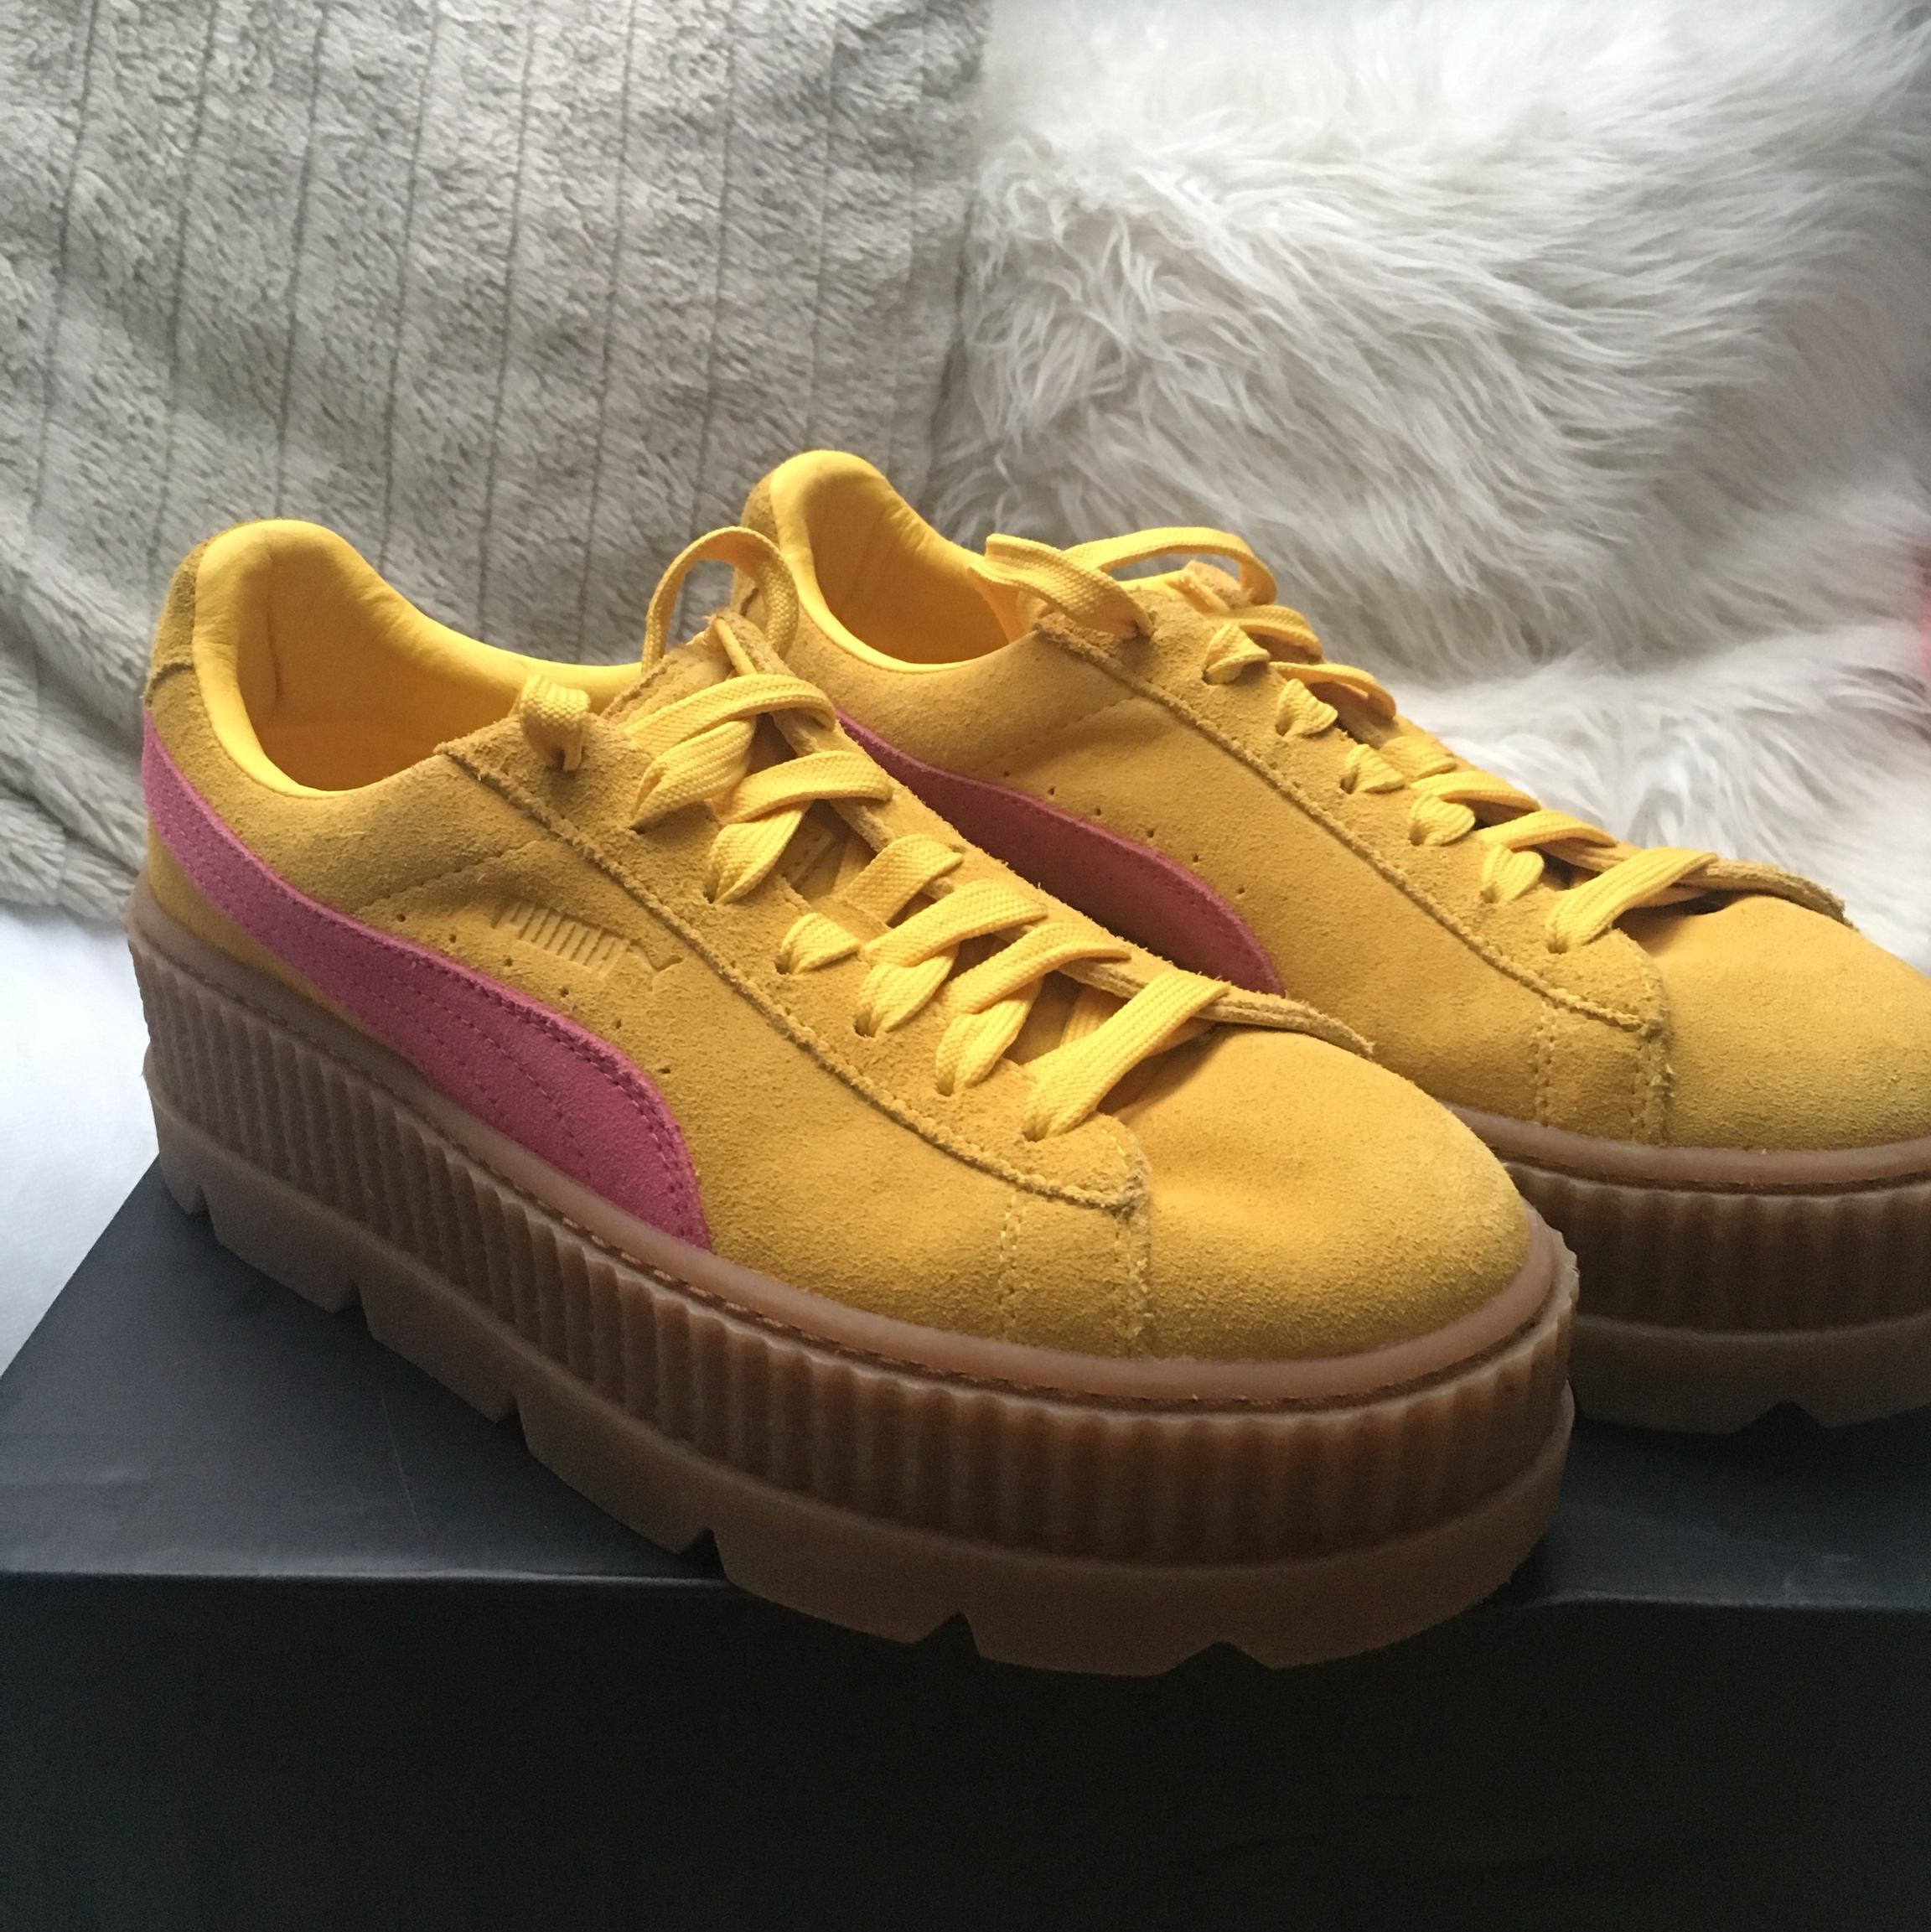 premium selection 72d82 5b9fa Yellow and pink suede Rihanna fenty puma platform... - Depop